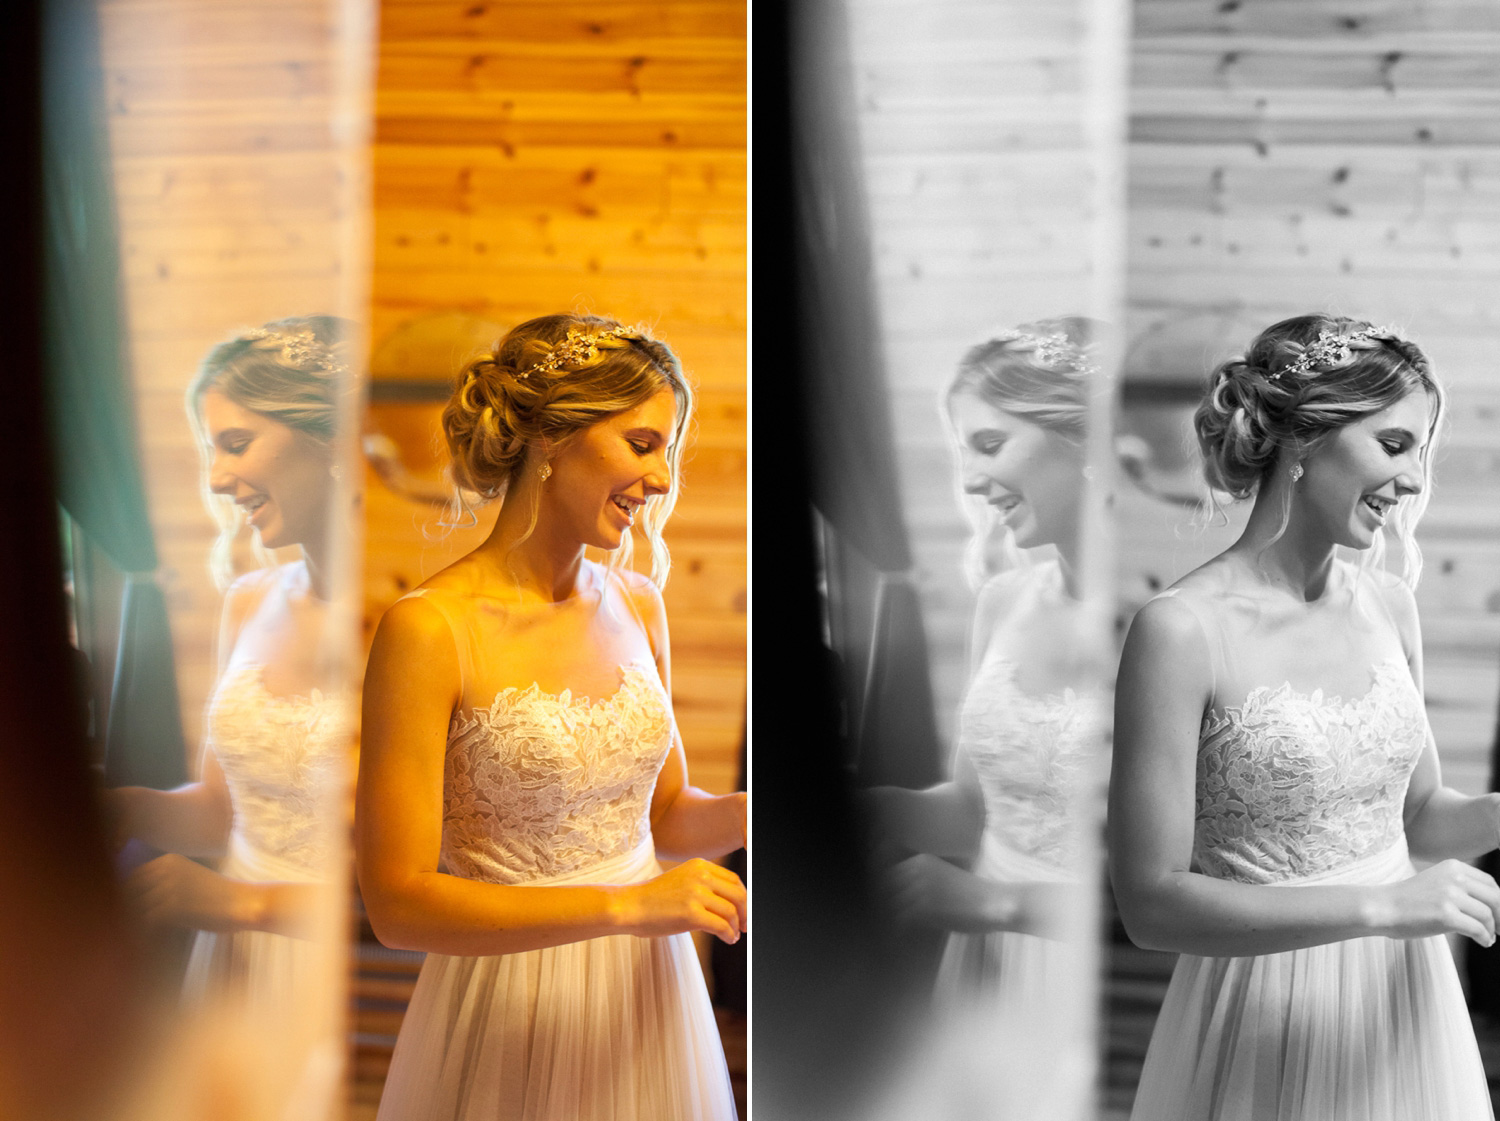 I adore this moment of the bride getting ready and being able to catch her reflection in the mirror. But, the room itself was dark and also made entirely of wood panels, which cast a yellow-ish glow on the subject. I felt that the image would be more powerful in black & white, removing all the distractions of color.